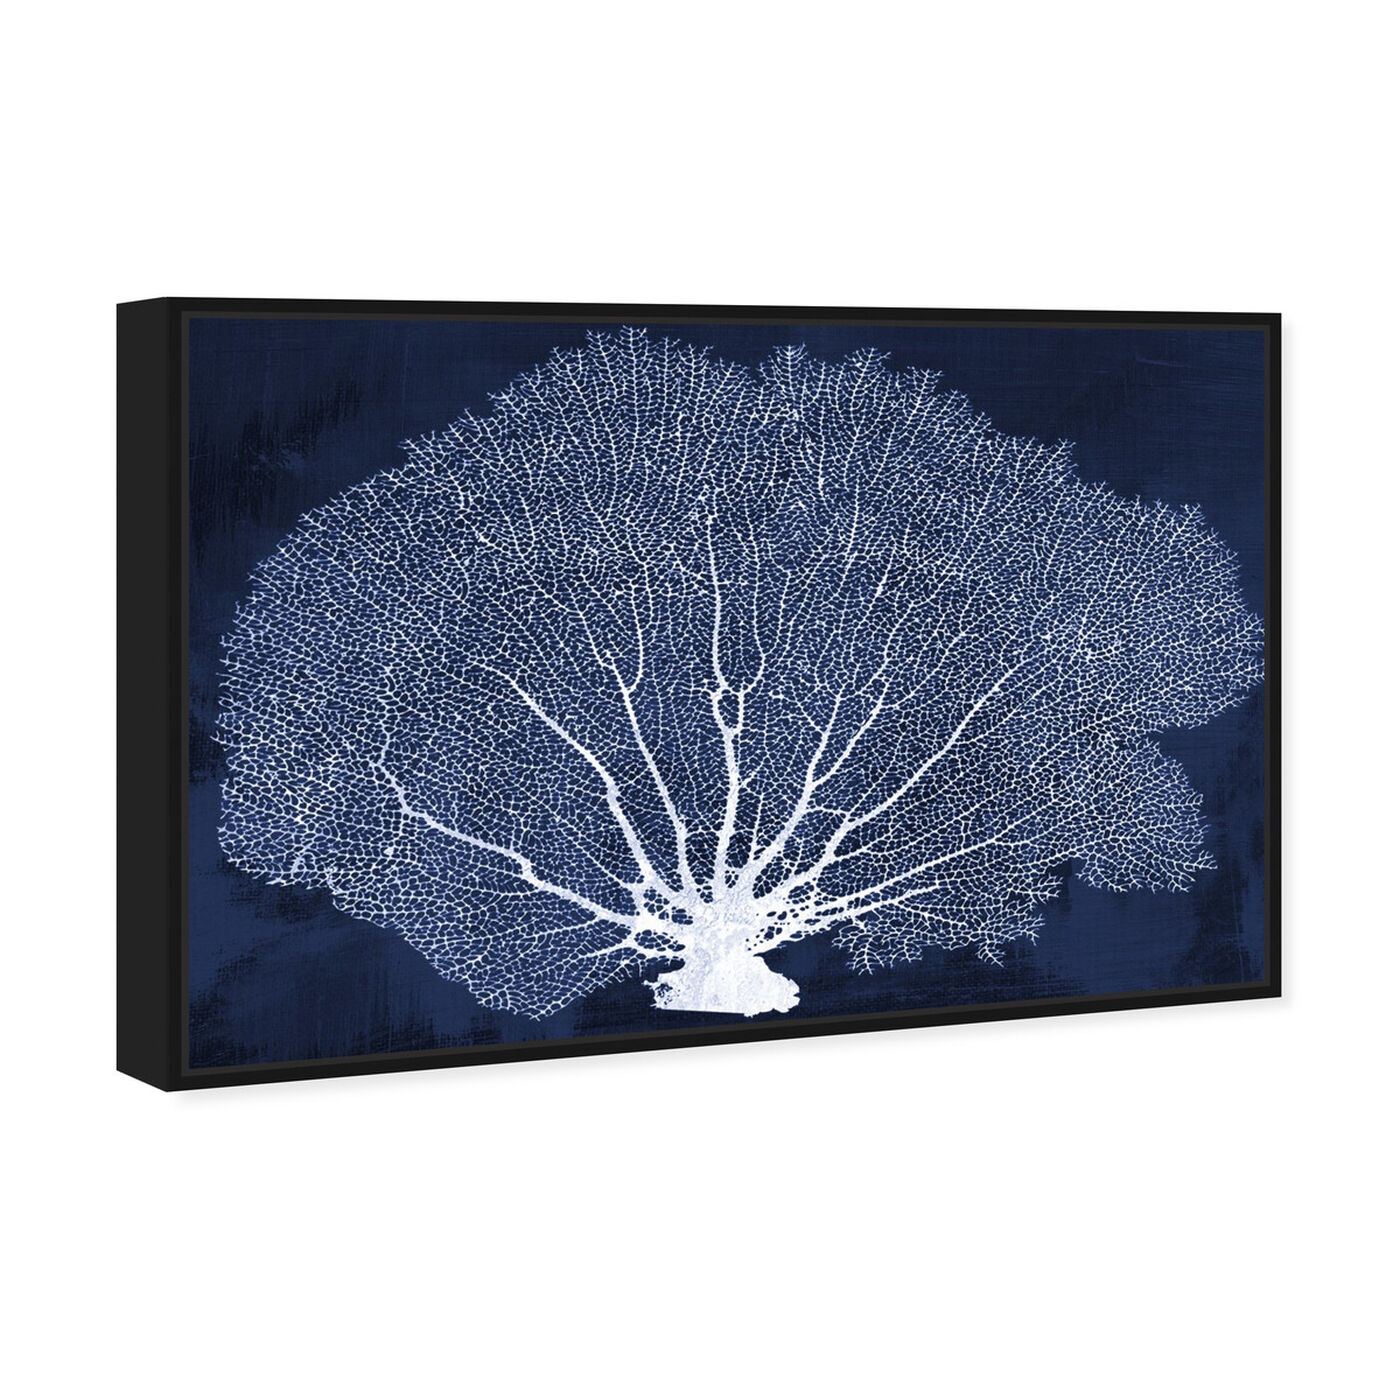 Angled view of Coral Fan Cyanotype featuring nautical and coastal and marine life art.